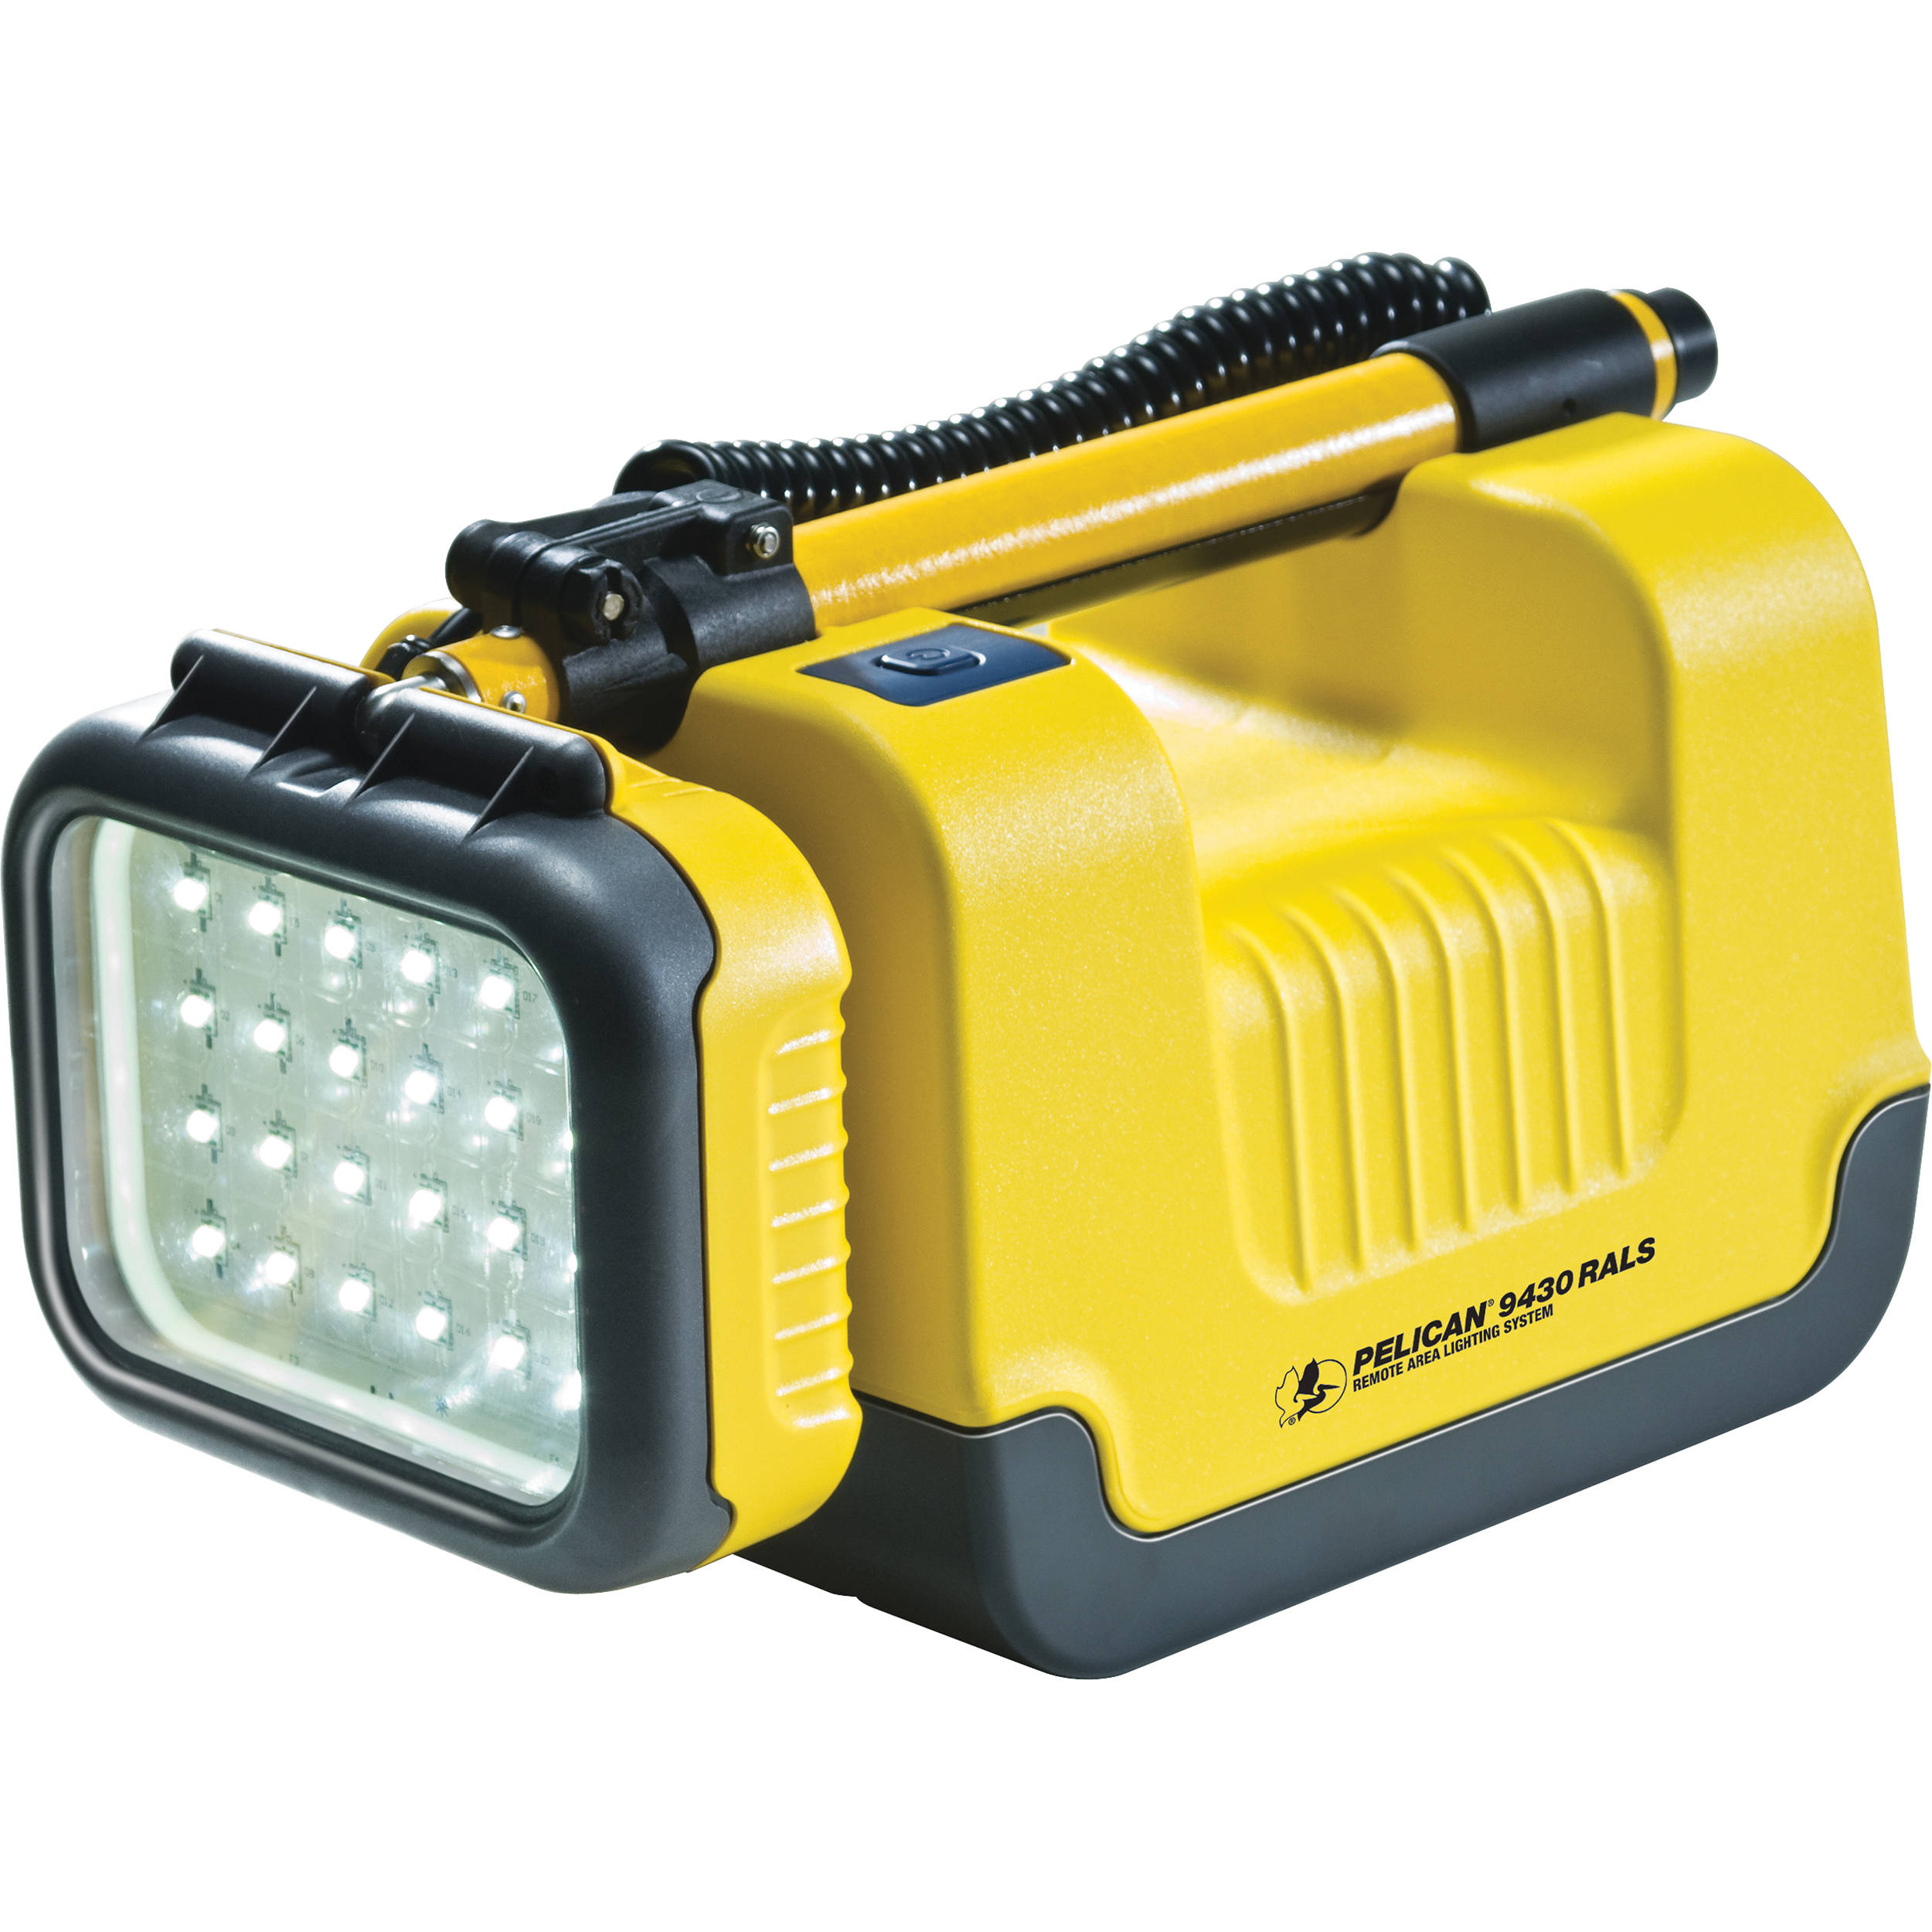 Pelican 9430 Remote Area Lighting System Yellow Emergency Lamp Battery Protector